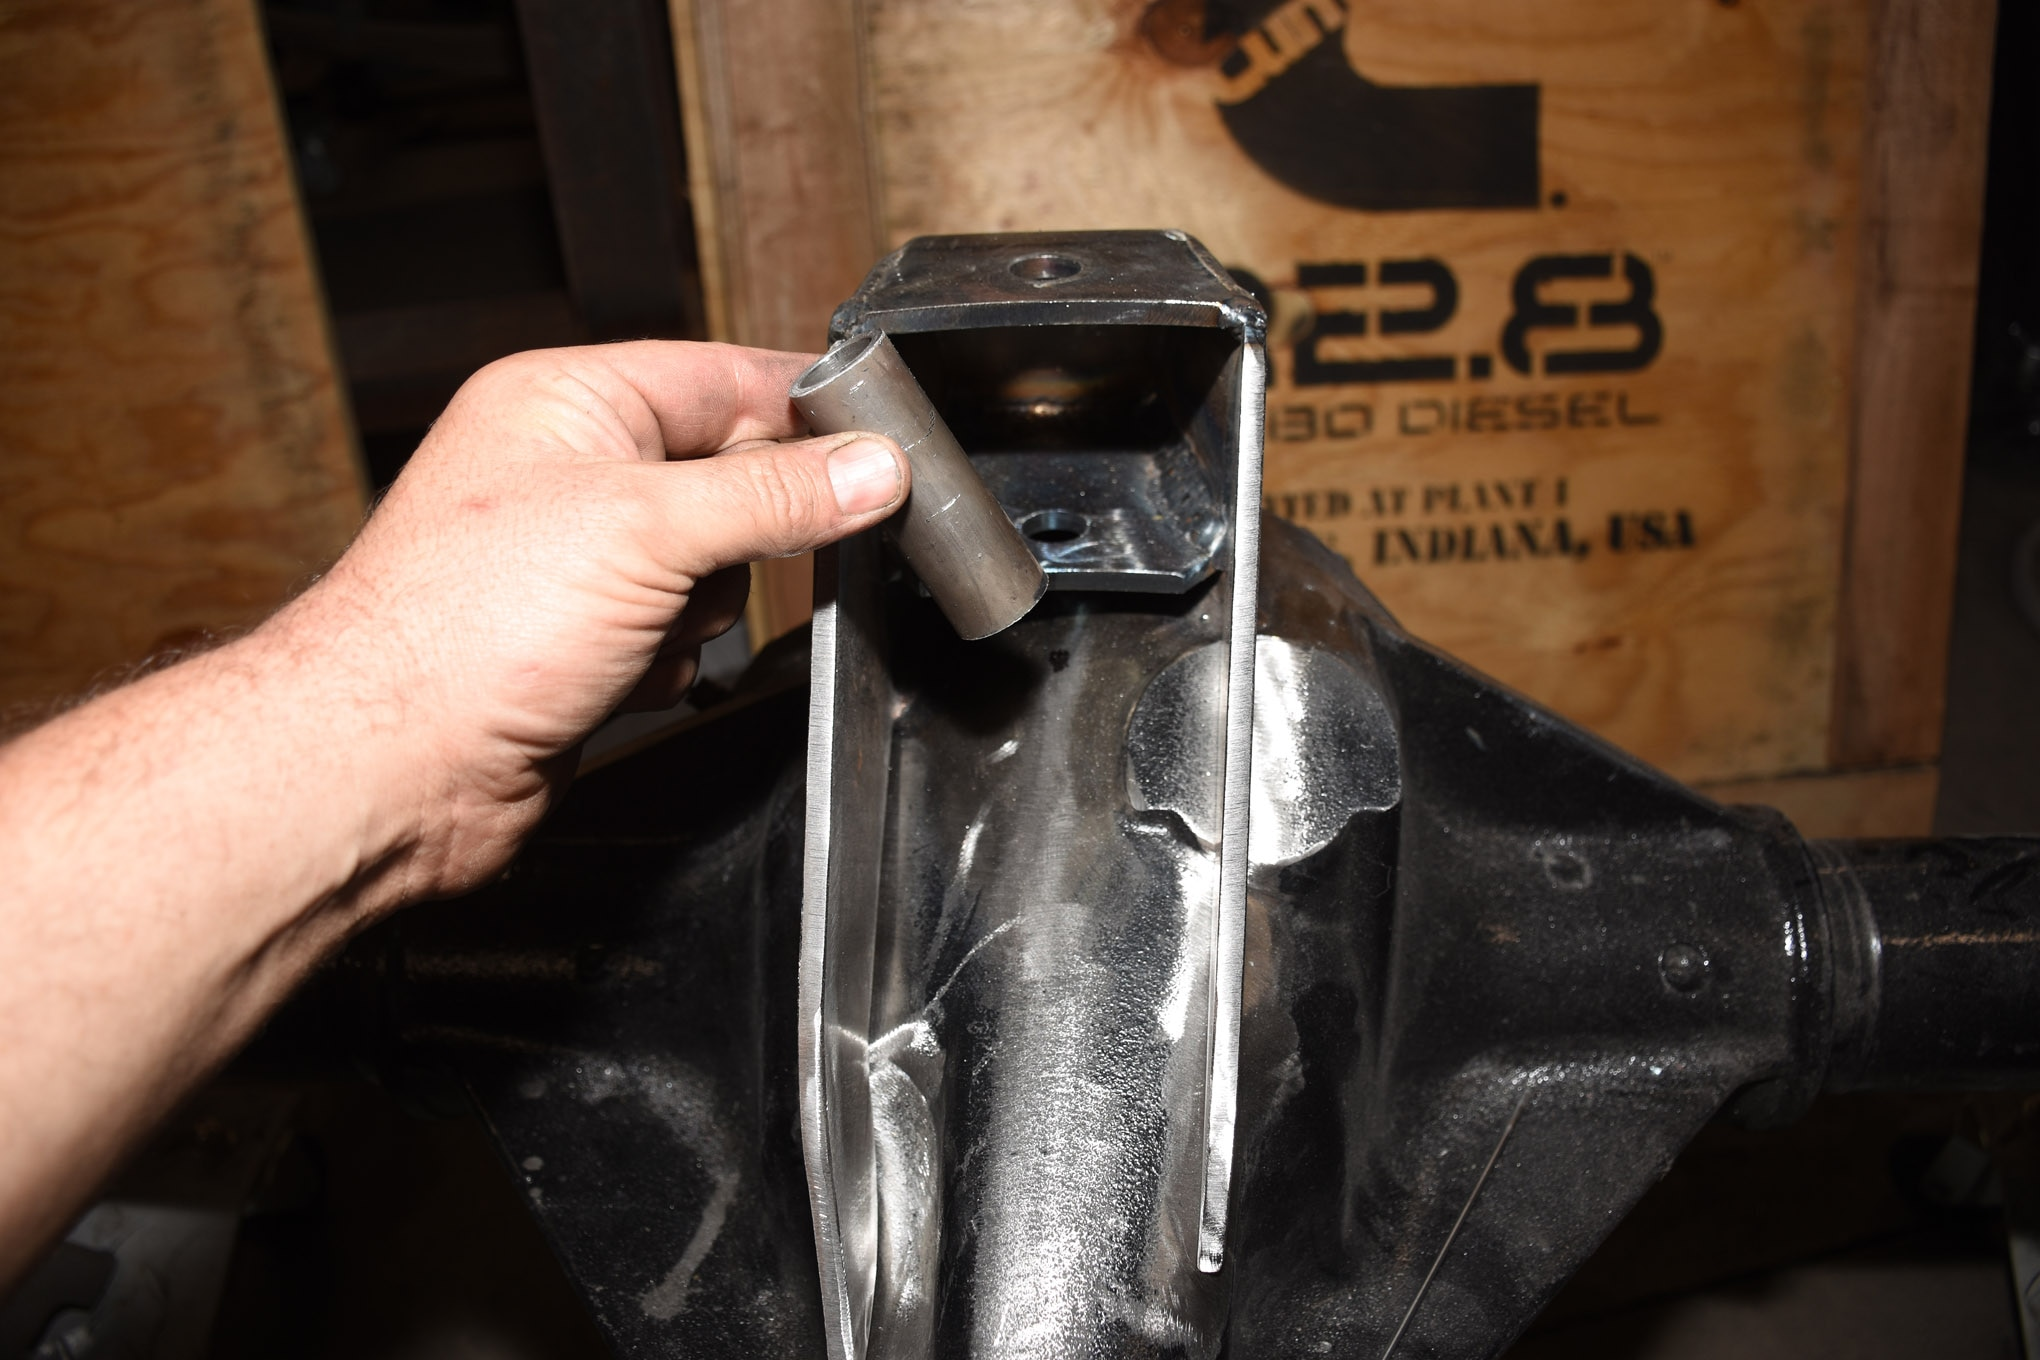 This sleeve cut on a lathe is about 0.030 inch longer than the mounting surface of the 1 1/4-inch uniball. That extra length helps when the steel shrinks during welding, allowing the uniball to fit in the pocket more easily when the bolt is out. The sleeve stays in place during all the welding on the truss and housing.